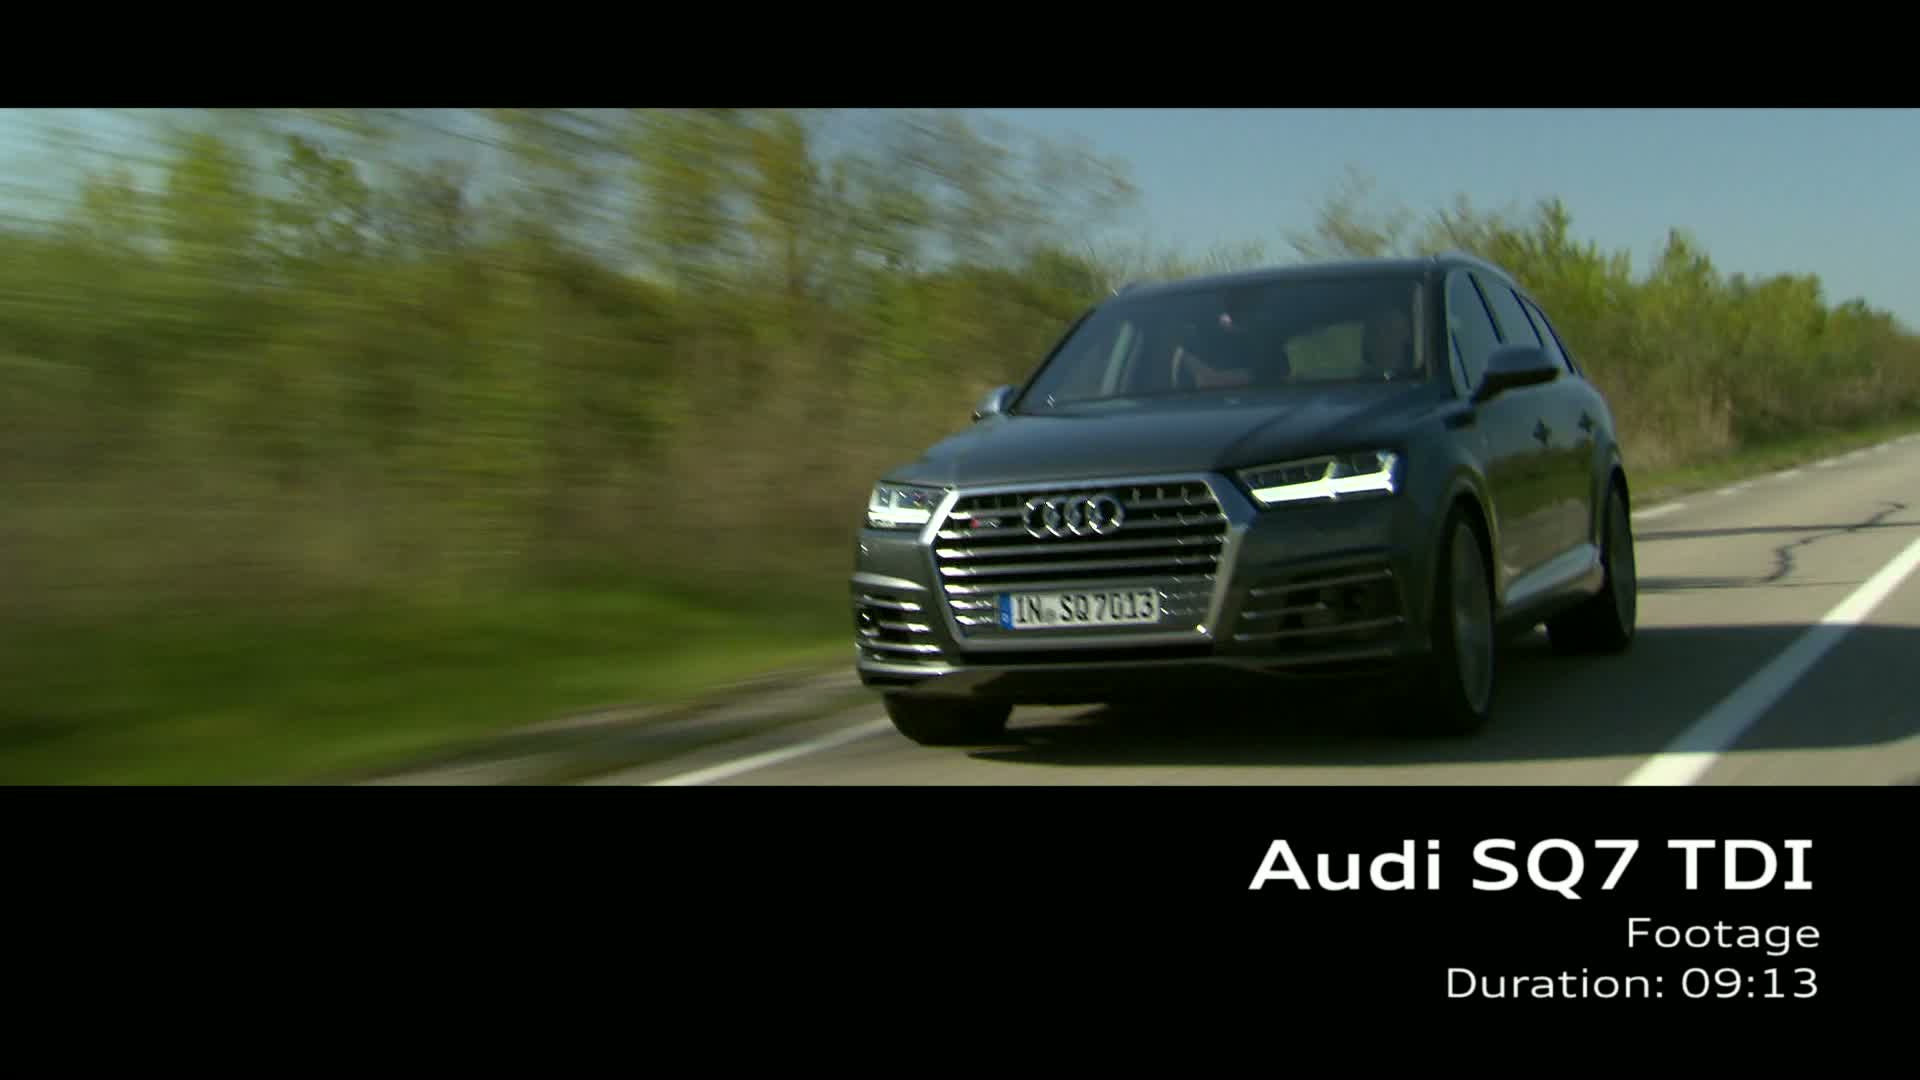 Audi SQ7 TDI - Footage on Location